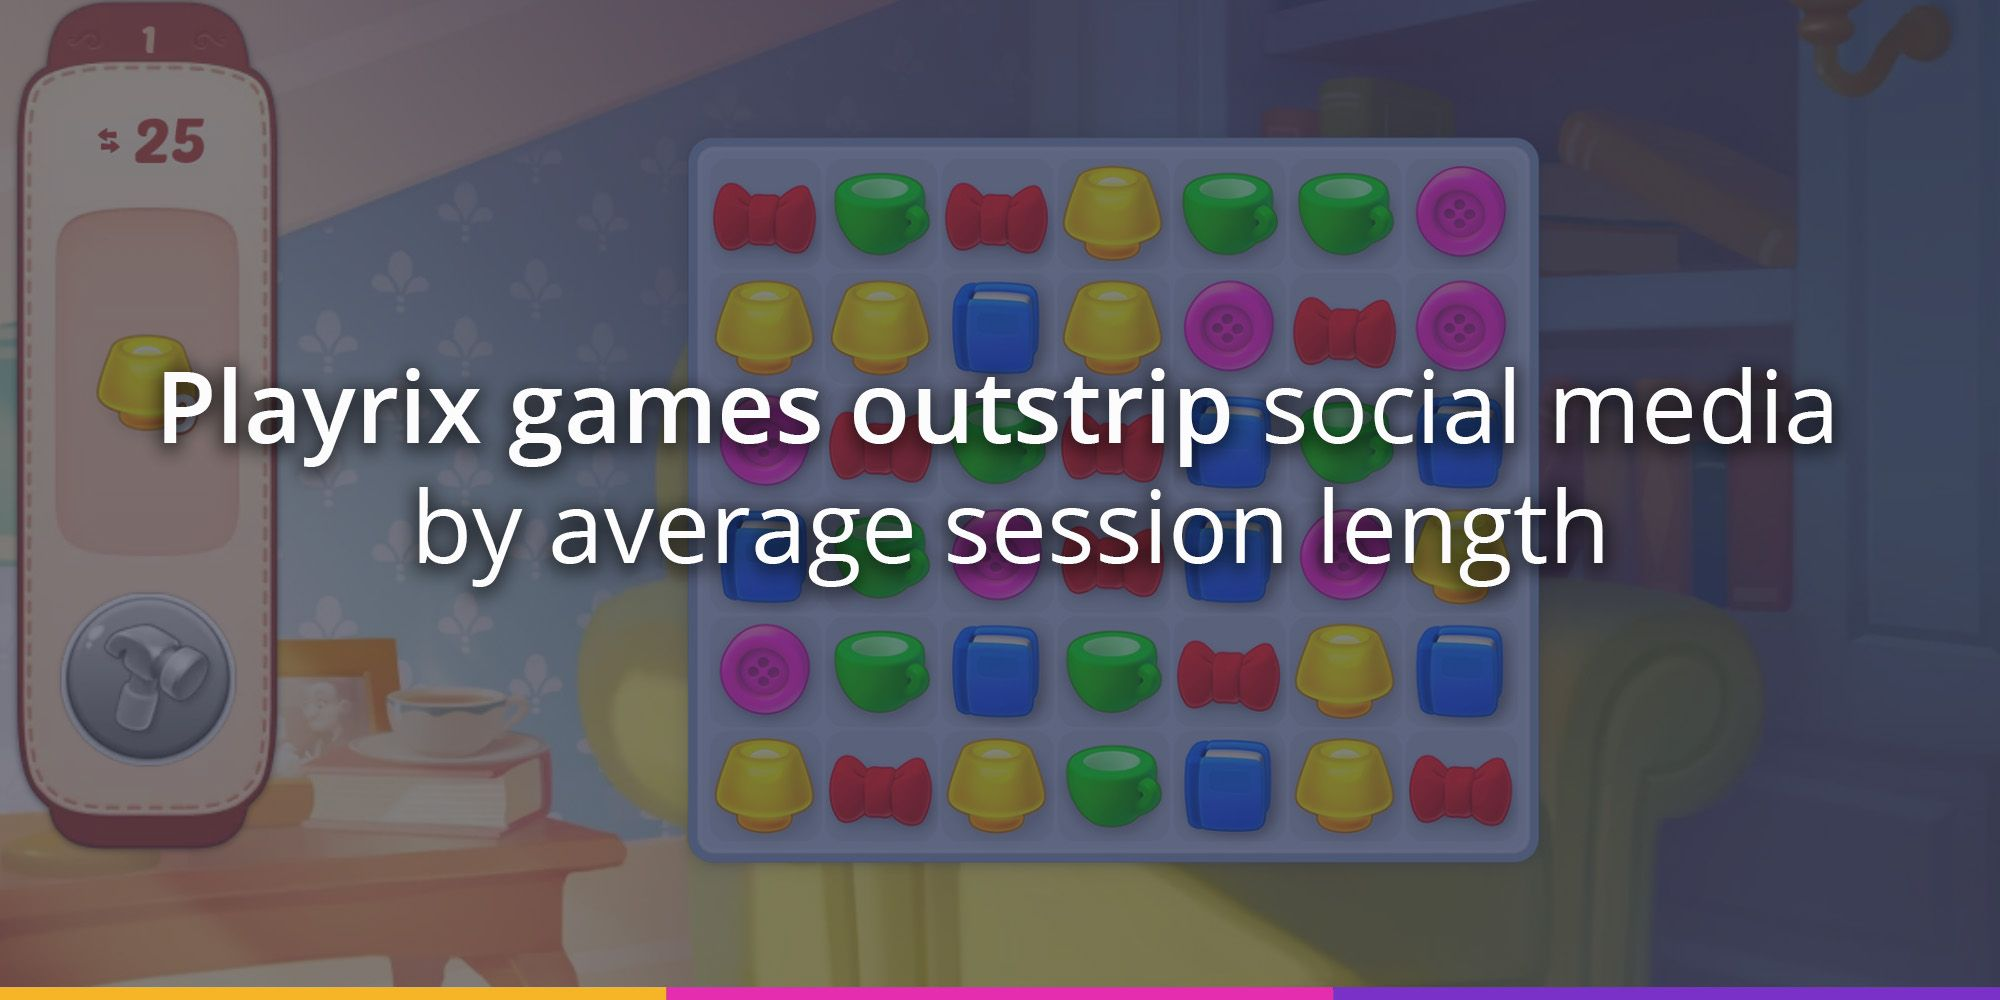 Playrix games outstrip social media by average session length